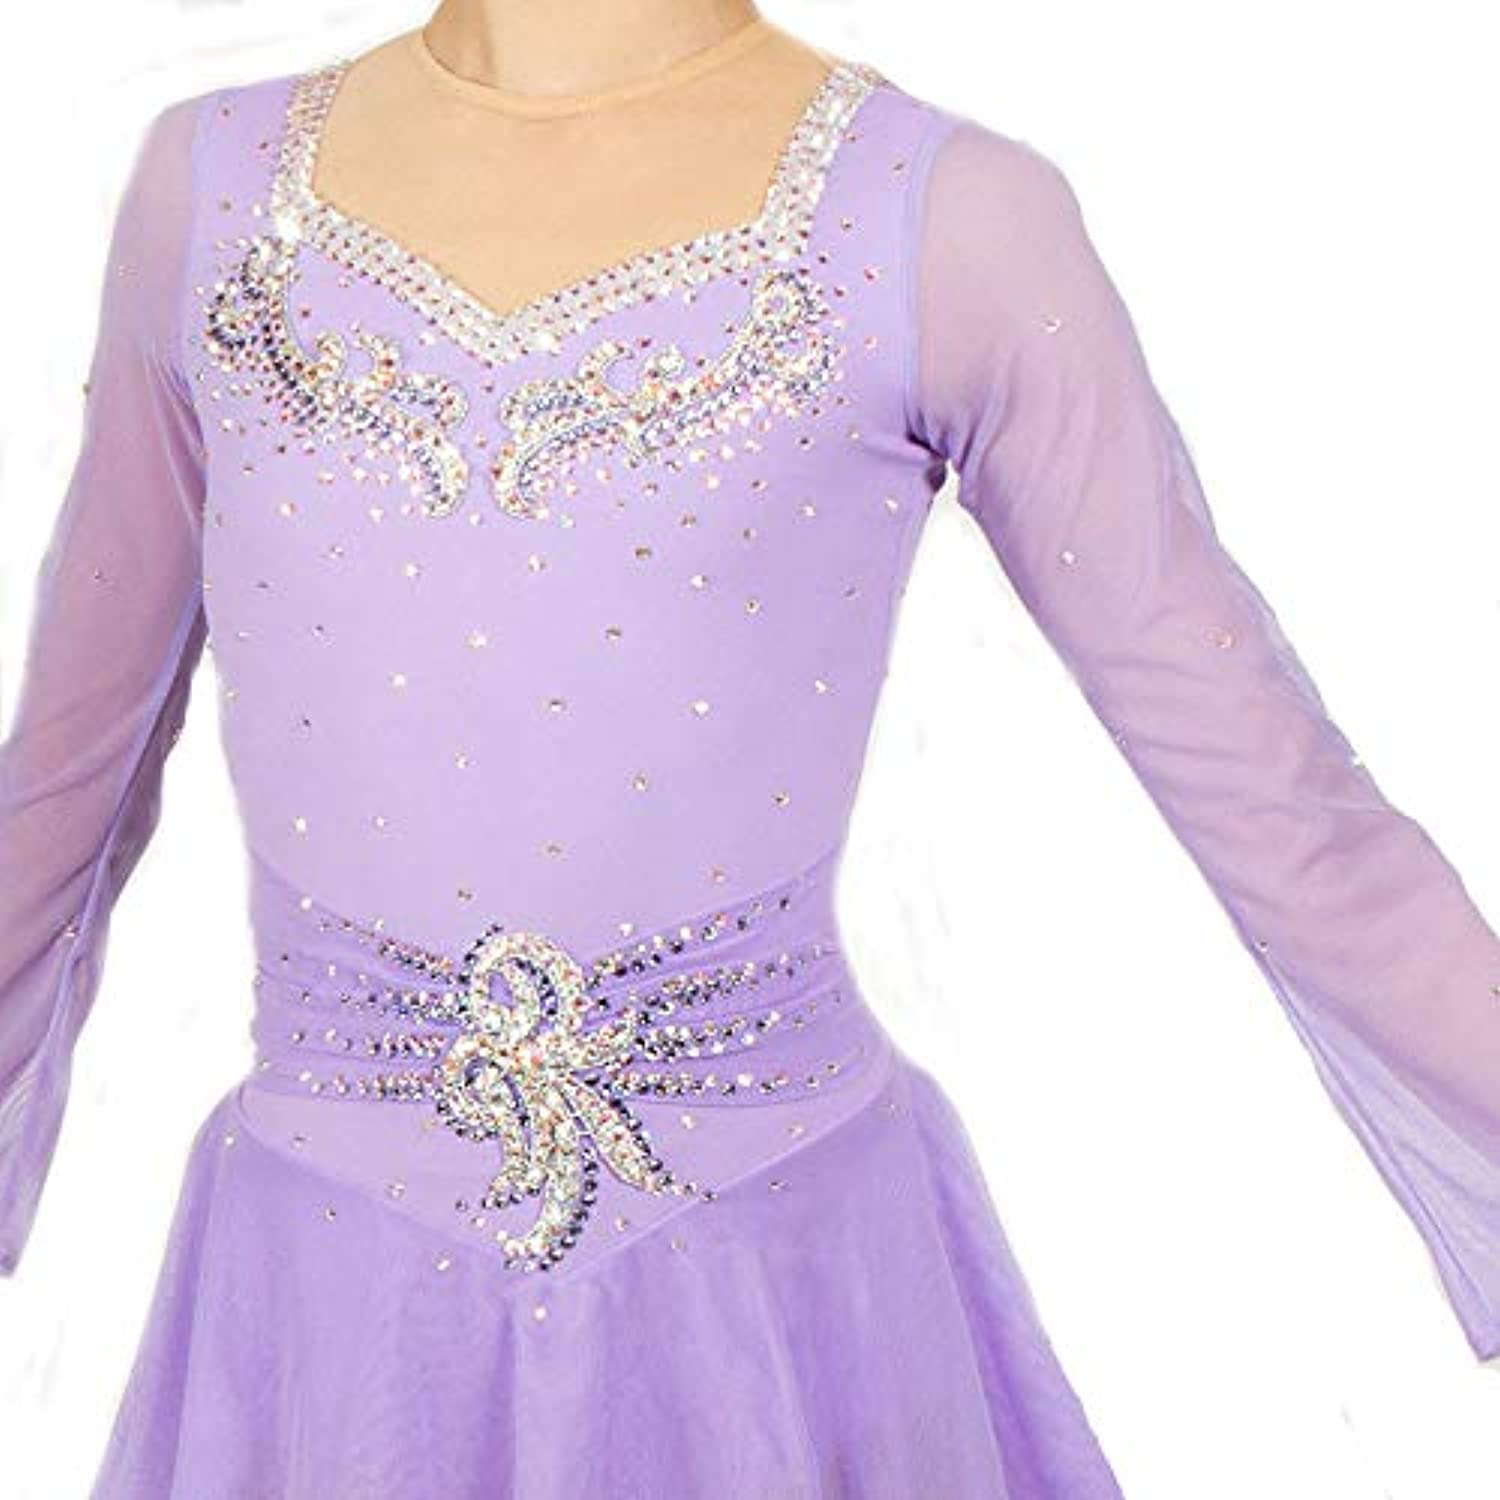 Heart&M Ice Skating Dress For Girls And Adult, Handmade Figure Skating Competition Performance Costume Crystals Long Sleeved Purple